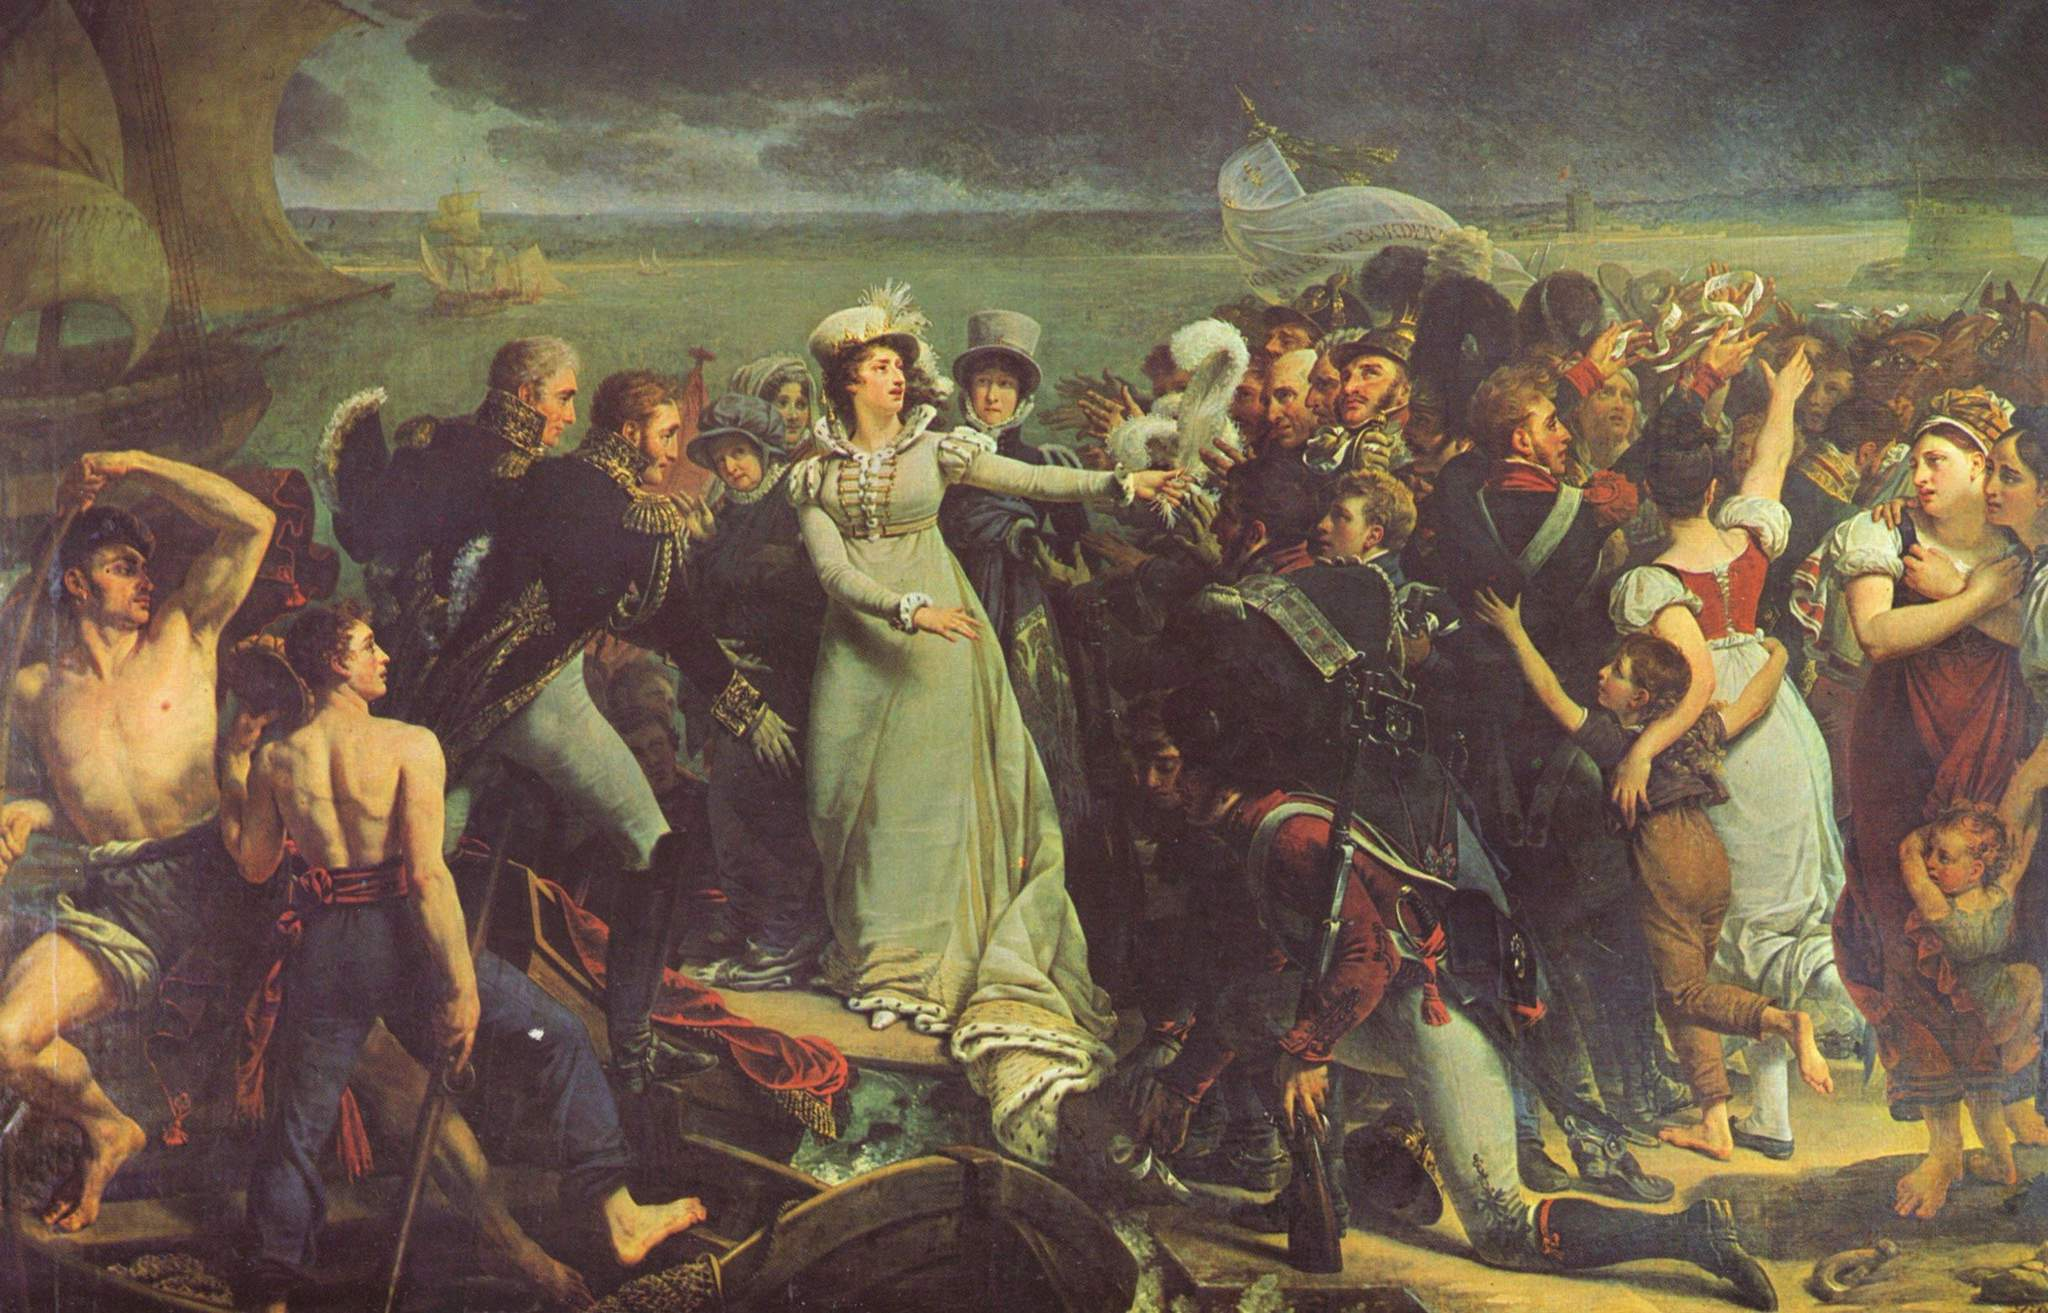 1819 Arrival of the Duchess of Angoulême in Pauillac by Antoine-Jean Gros  (location